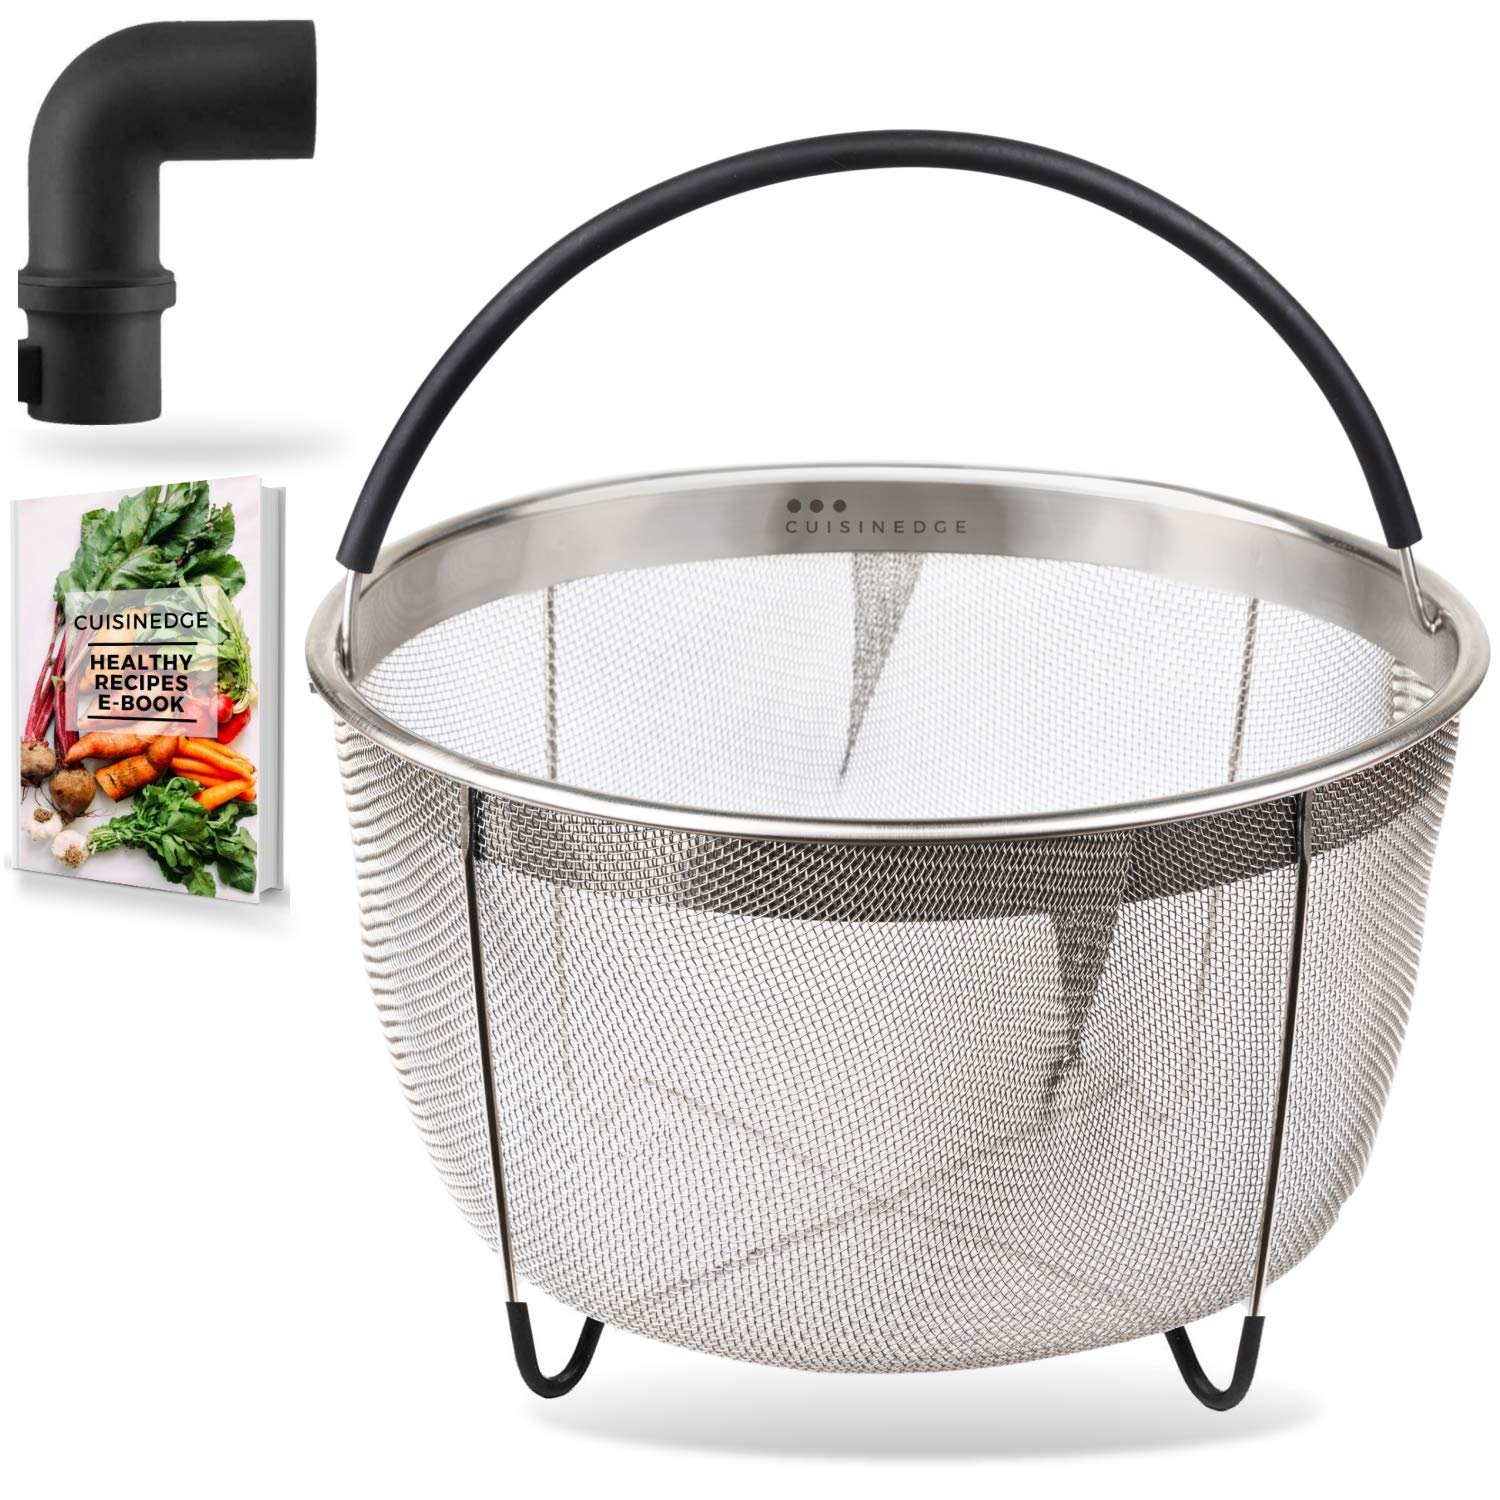 Cuisinedge Steamer Basket for Instant Pot Accessories 6 quart - Stainless Steel Insert Strainer for Instapot 6 qt, 8 qt Pressure Cooker w/Silicone Handle - BONUS Steam Release Diverter, eBook by Cuisinedge